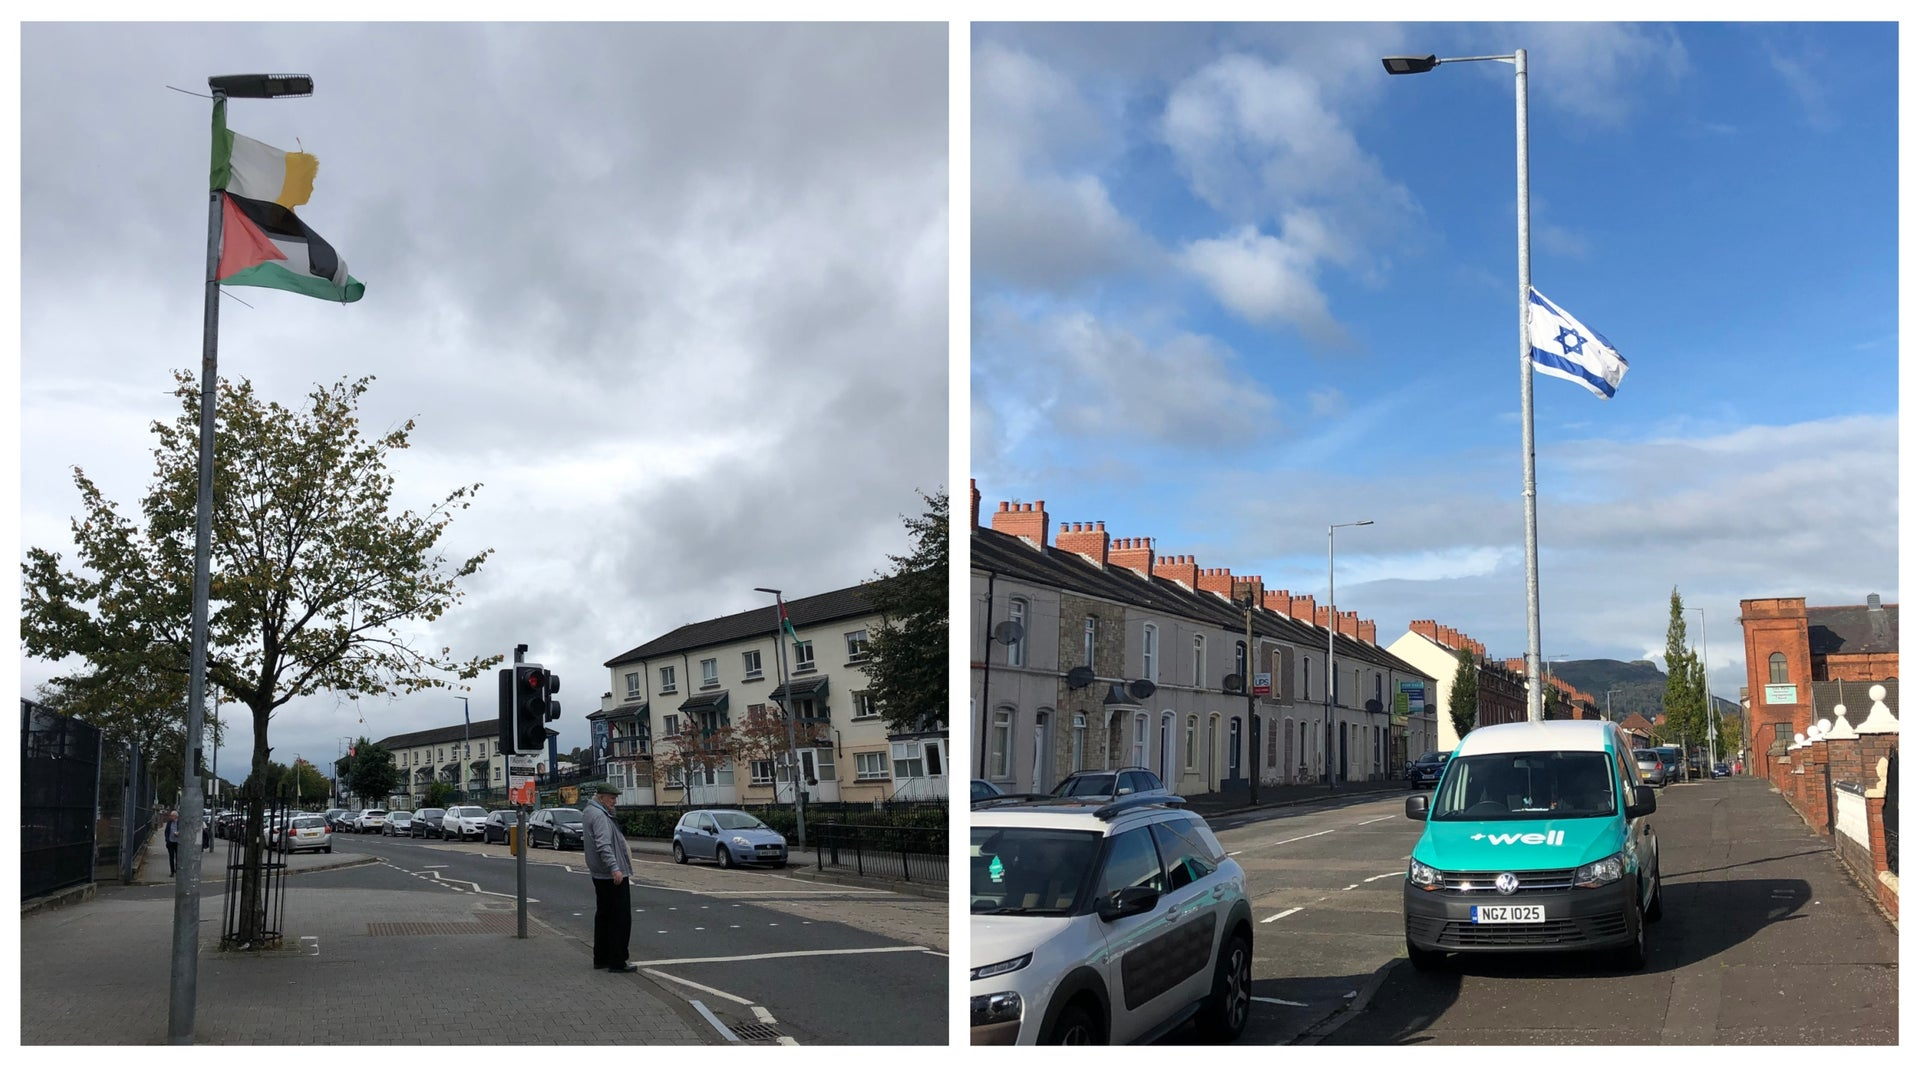 Palestinian and Irish flags flying from lampposts in the Bogside neigborhood of Derry, left, and an Israeli flag in a unionist district of West Belfast.